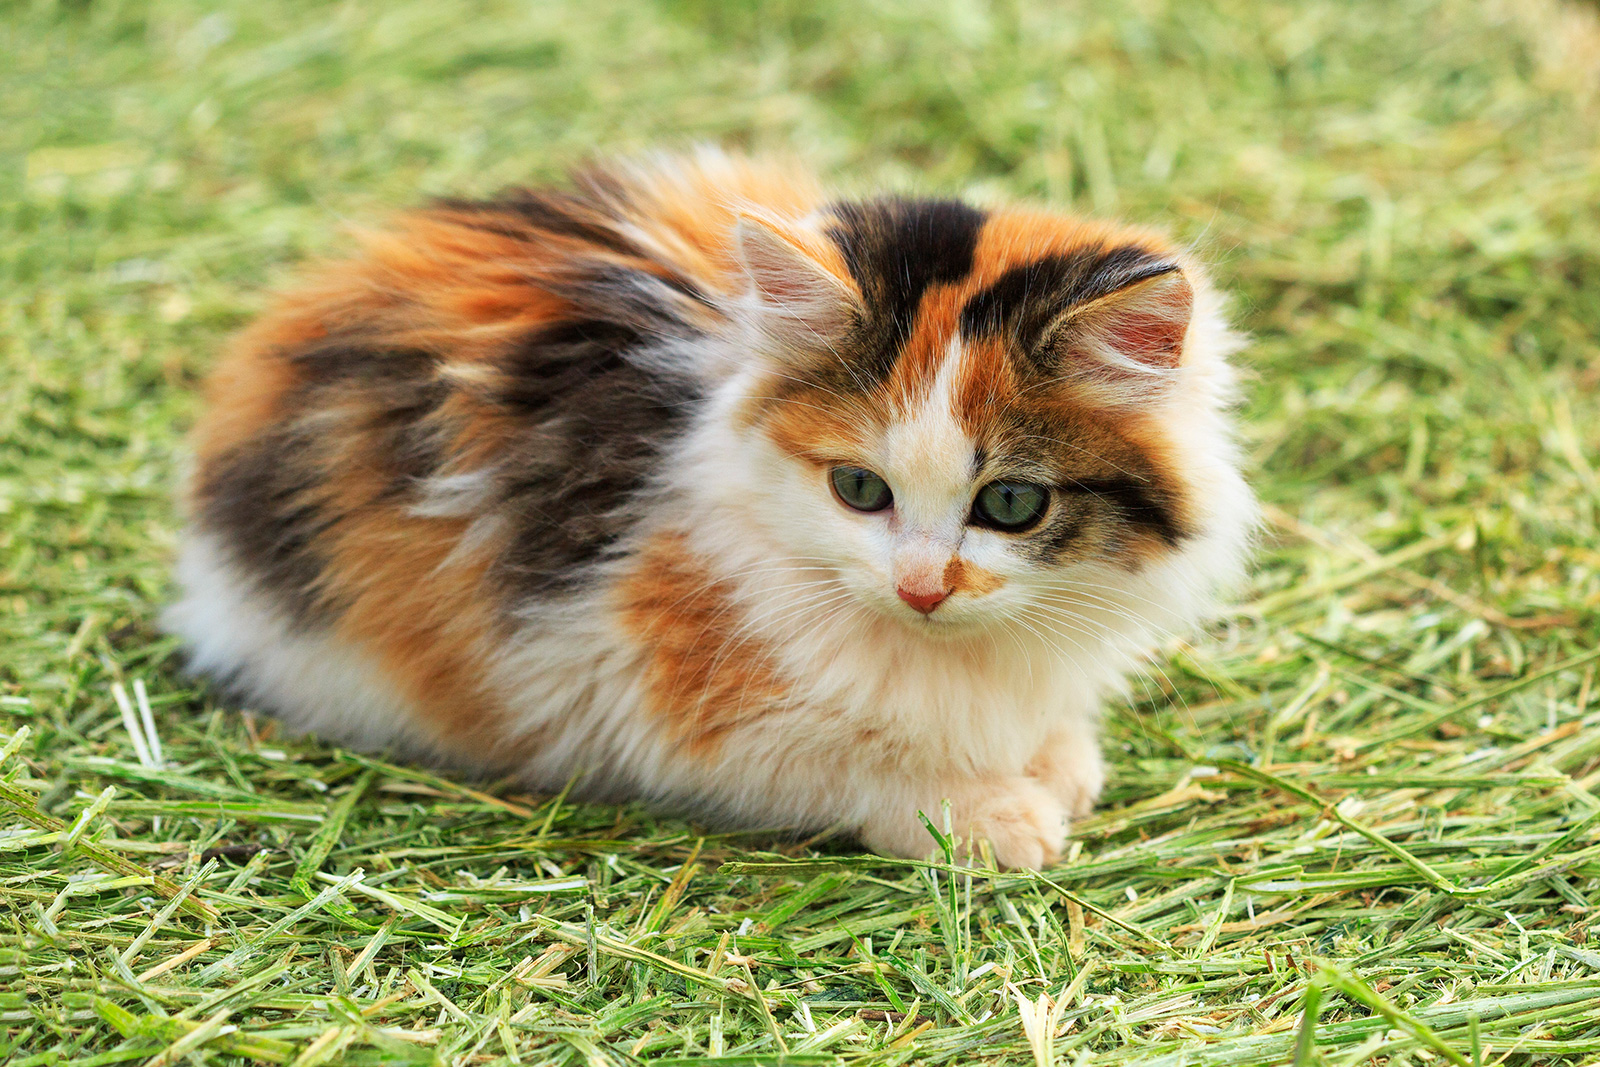 20 Fun Facts You Didn't Know About Calico Cats